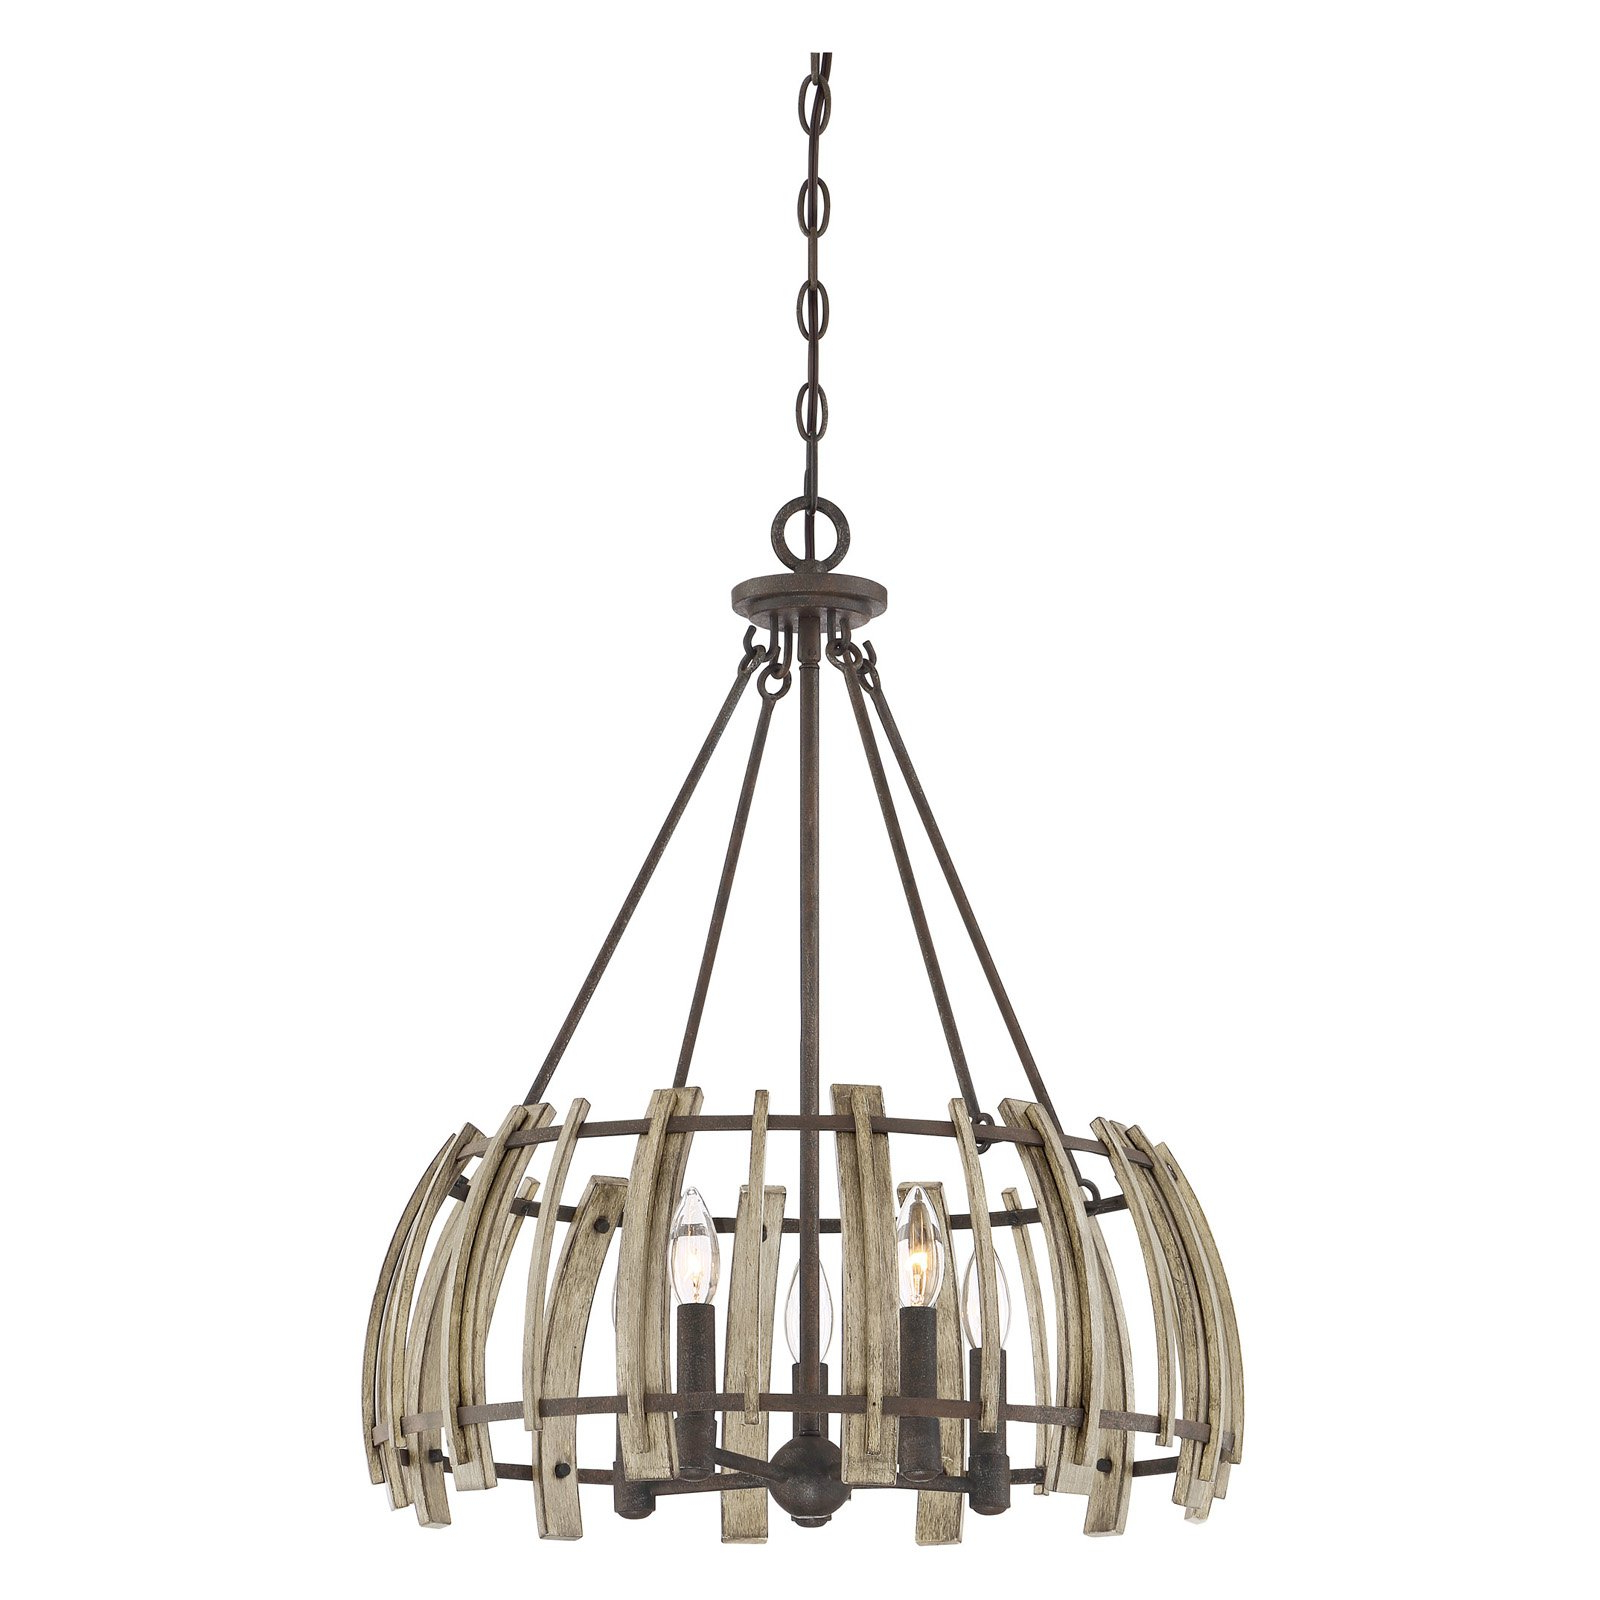 Quoizel Wood Hollow Whl2821Rk Pendant Light (View 10 of 25)